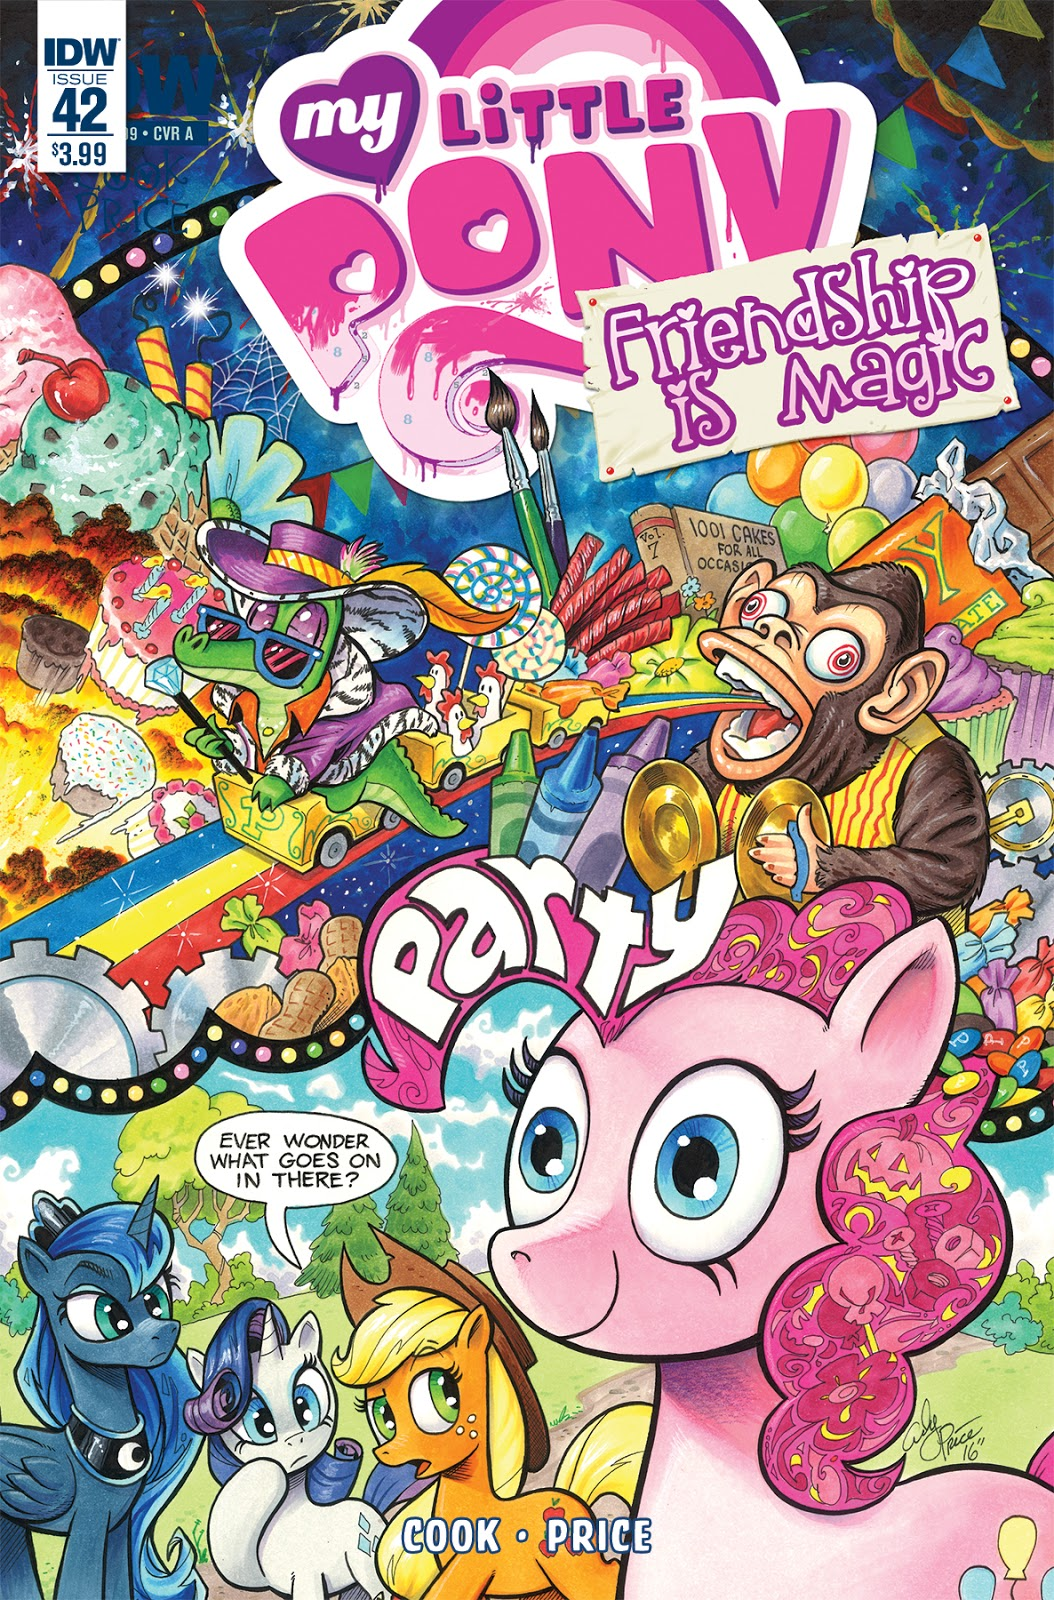 Friendship is Magic Issue 42